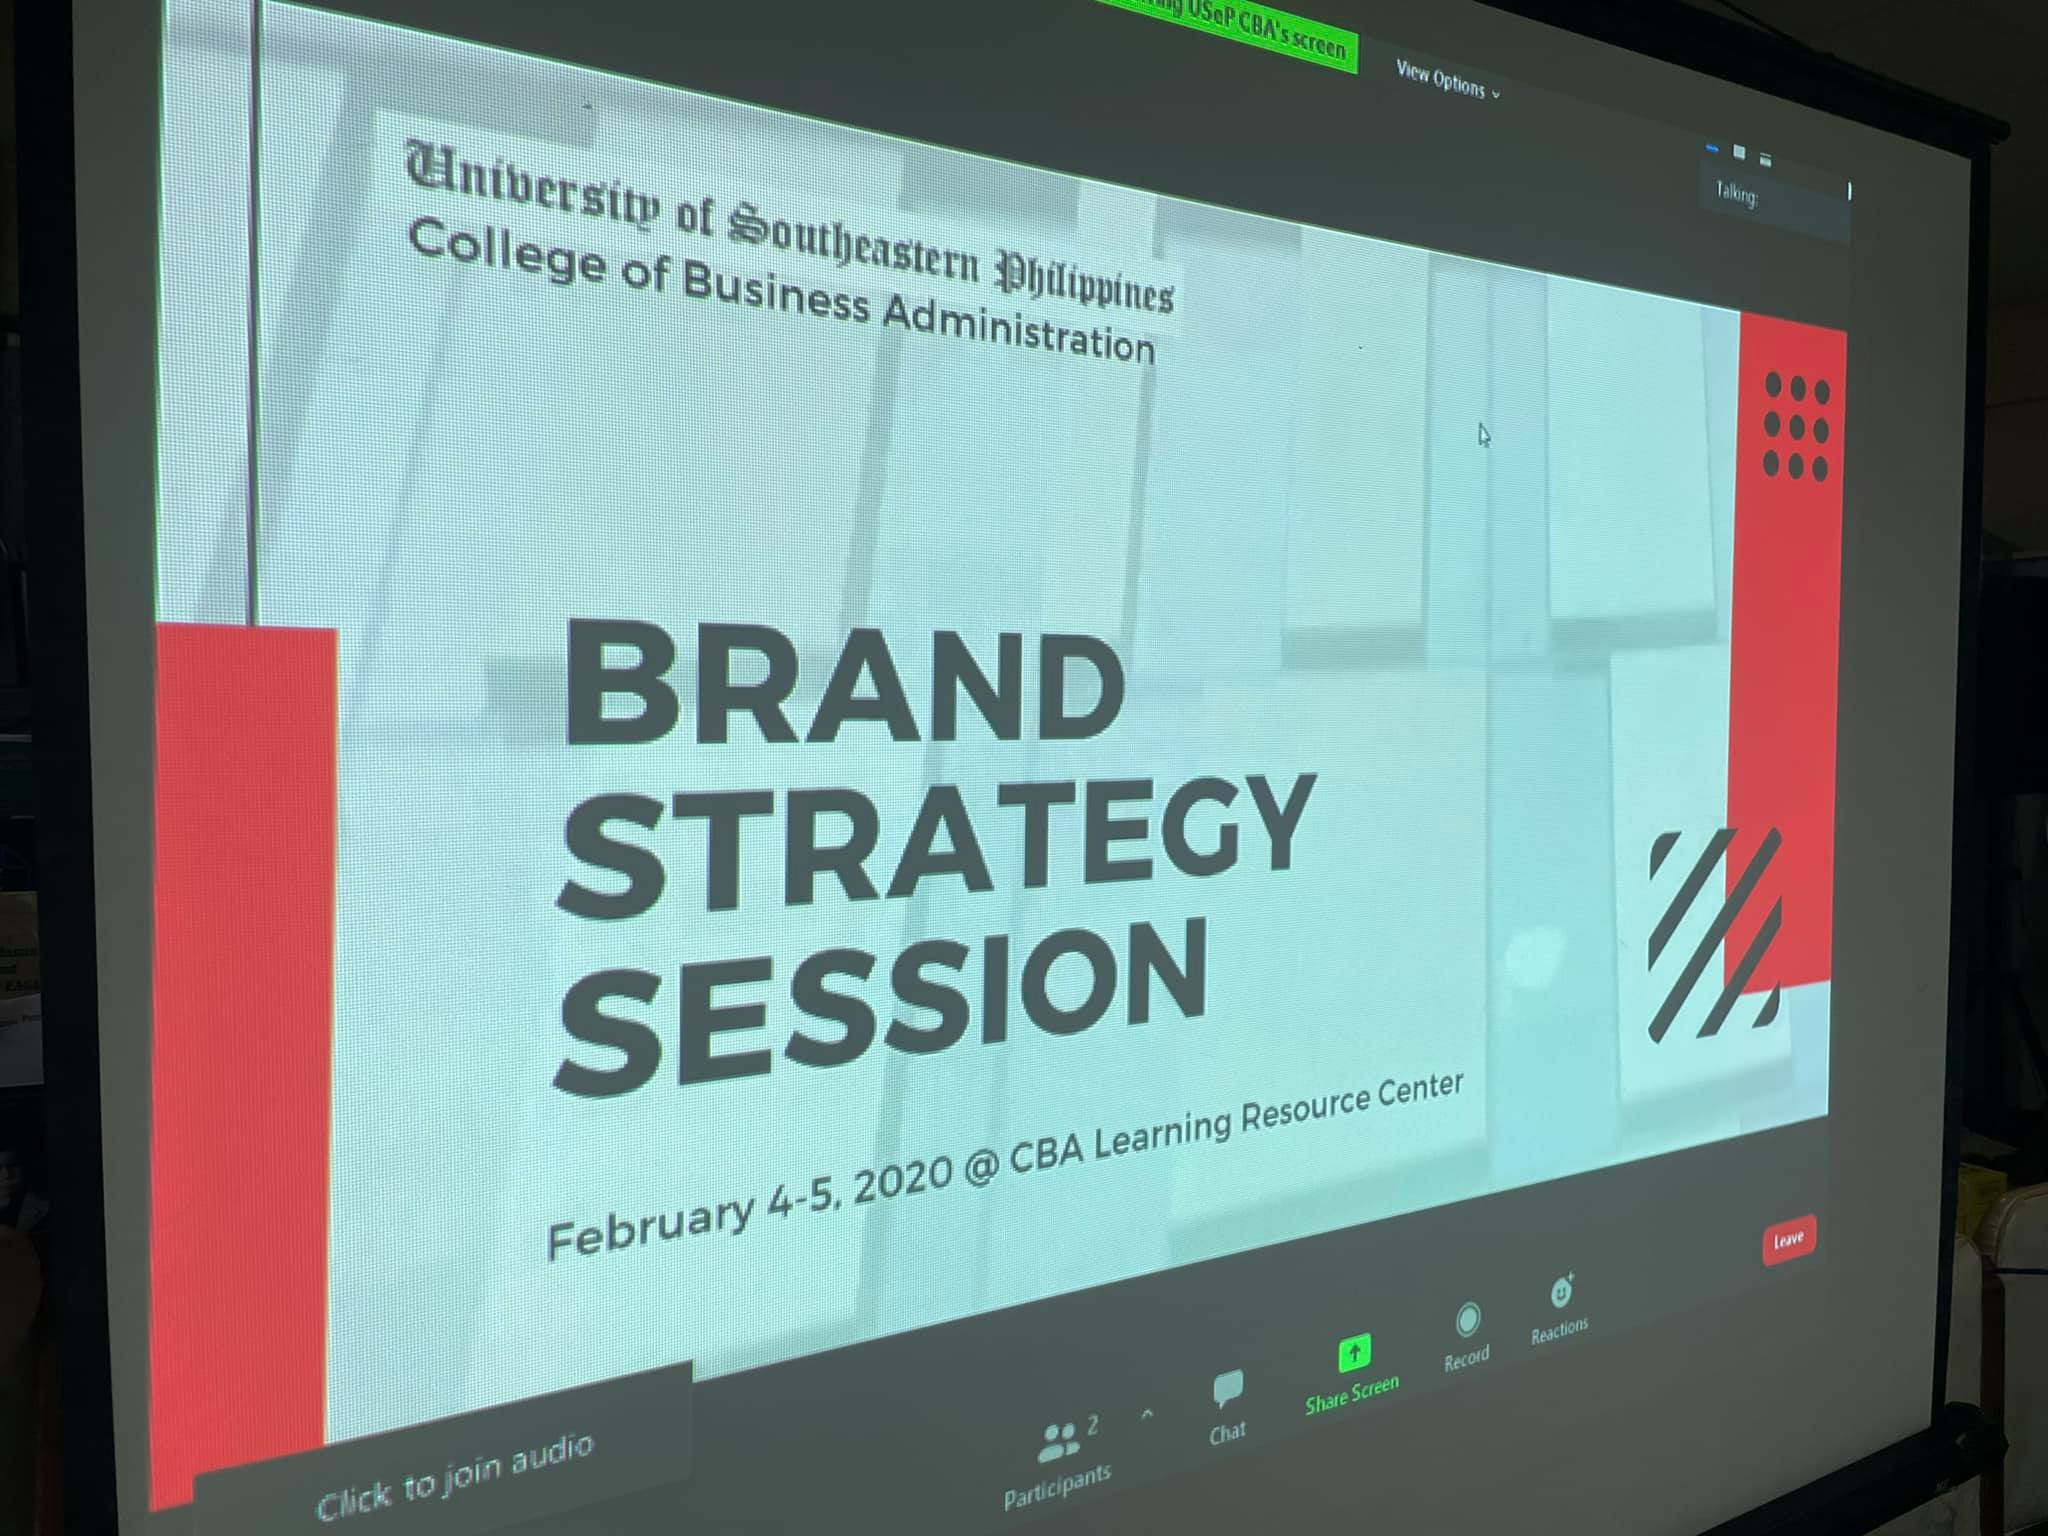 Brand Strategy Session for CBA